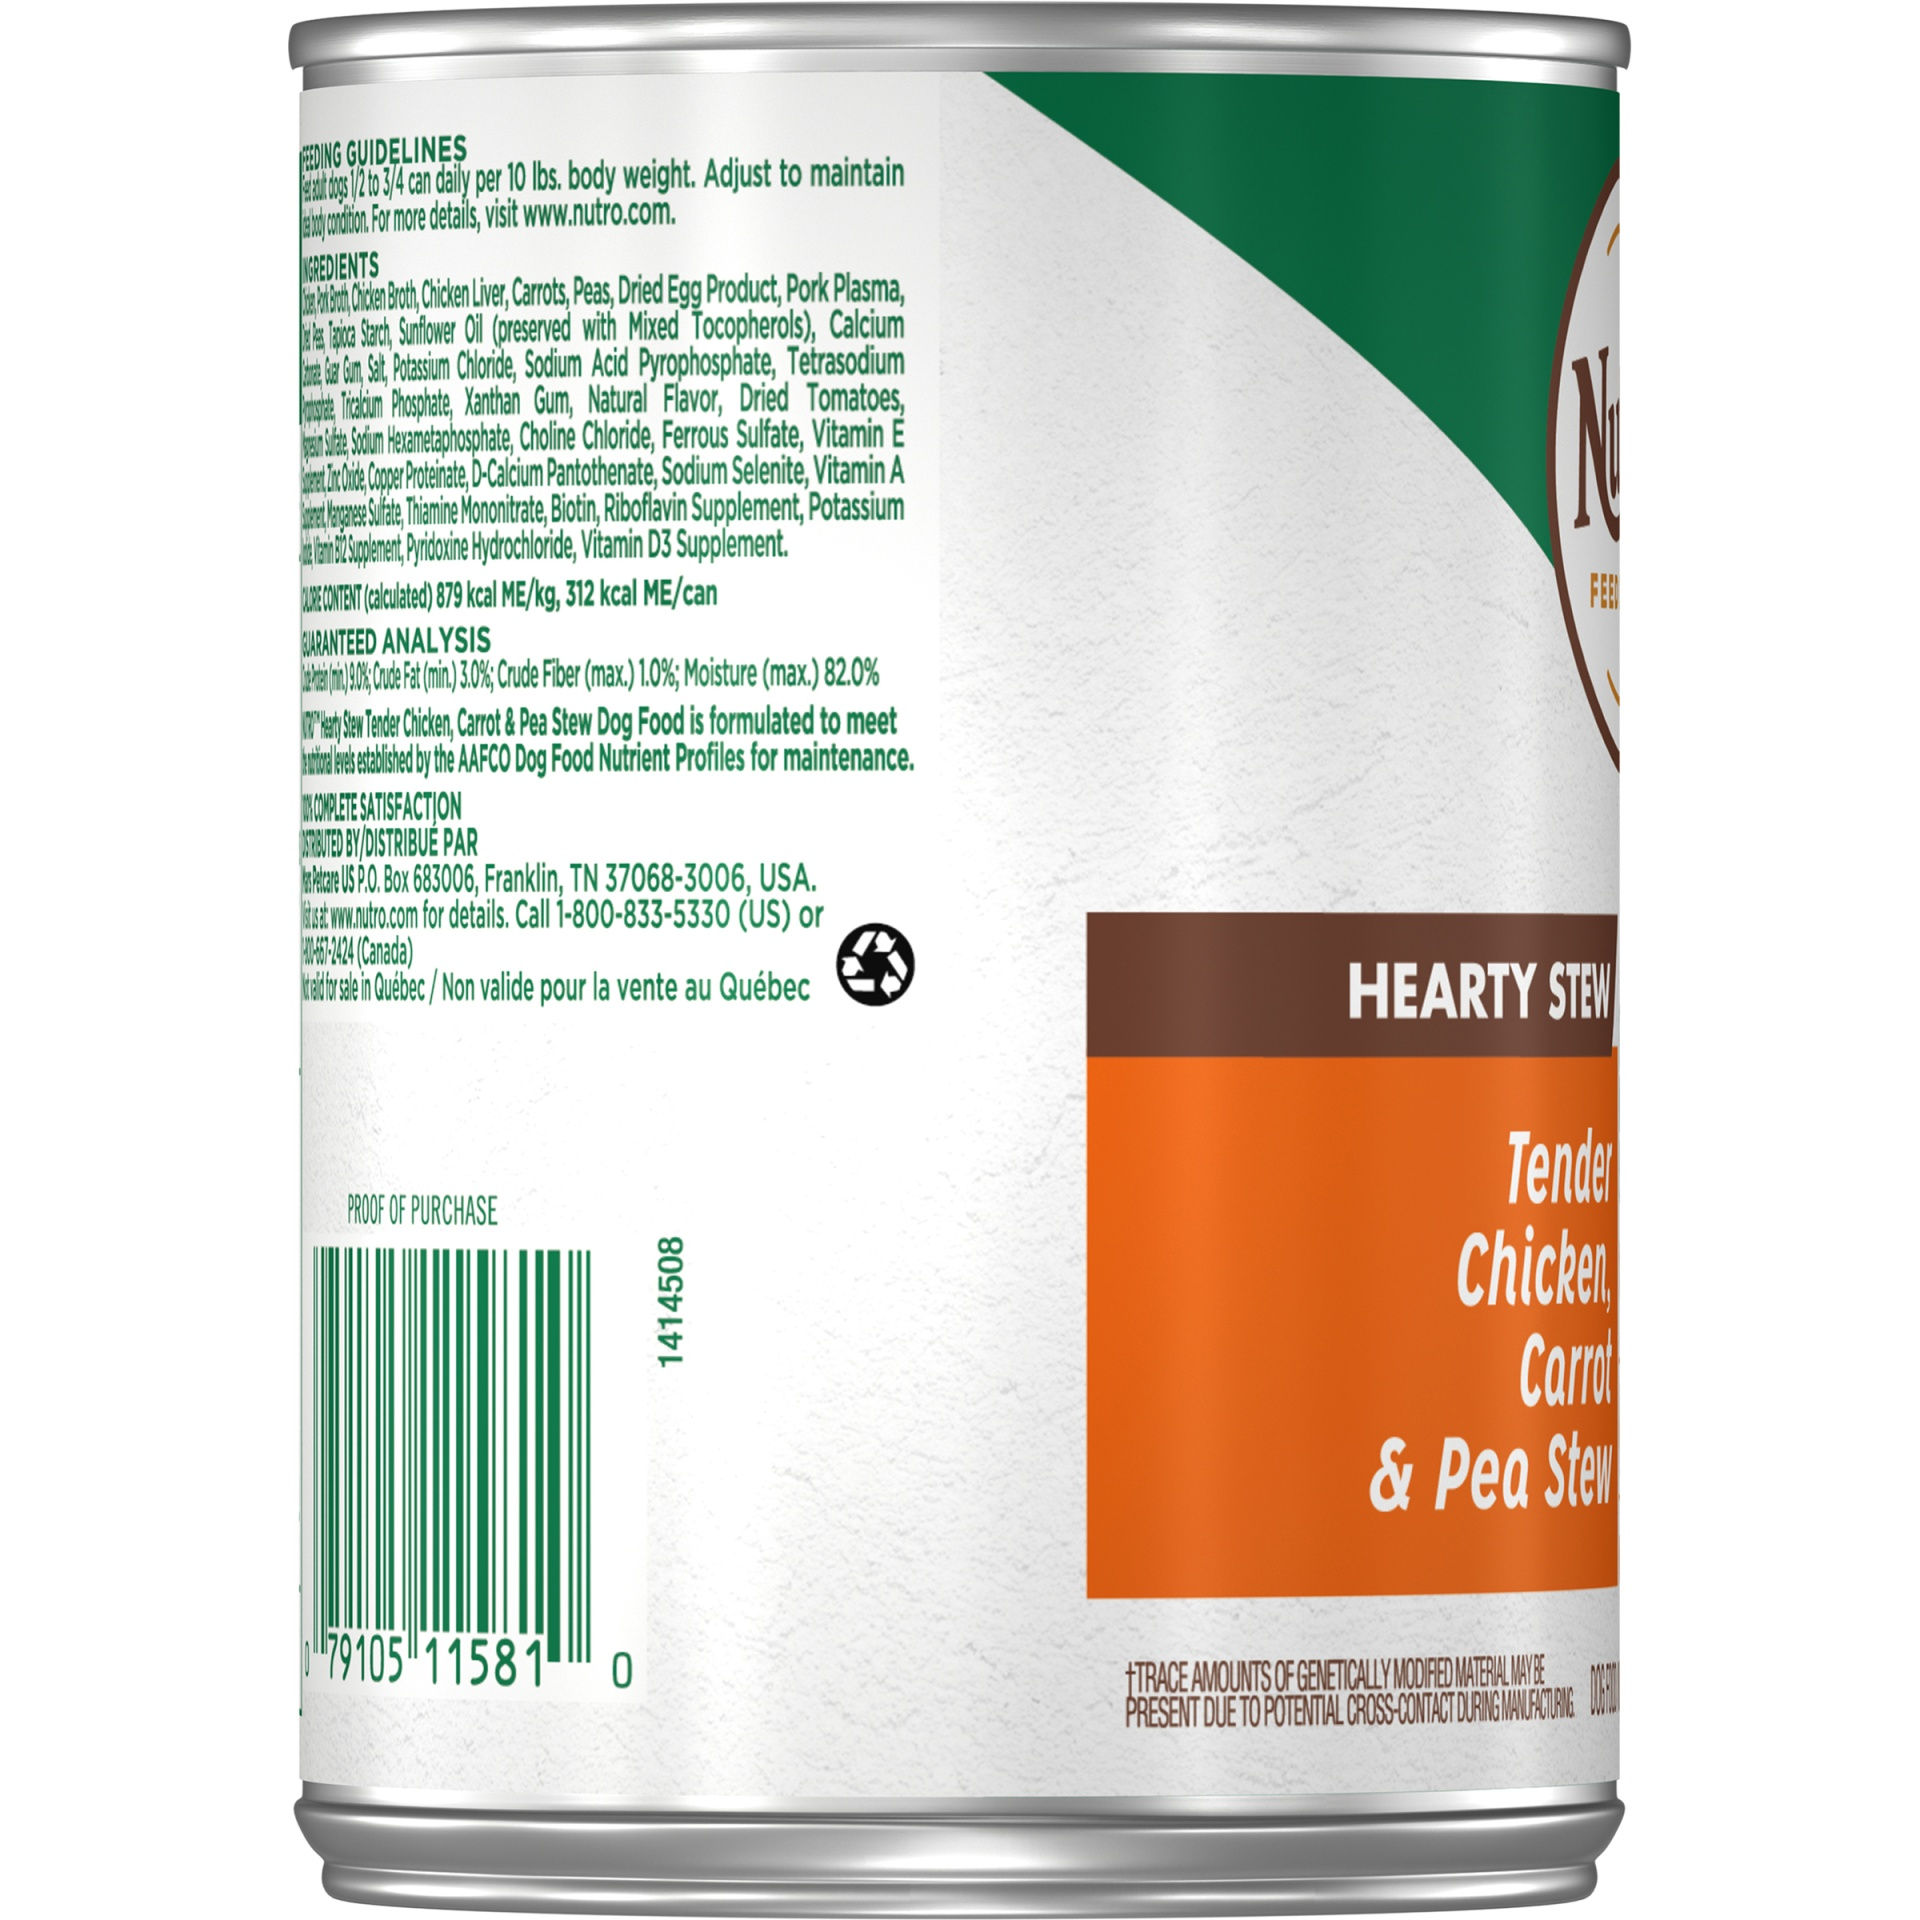 slide 2 of 7, Nutro Hearty Chicken Carrot & Pea Stew Wet Dog Food,